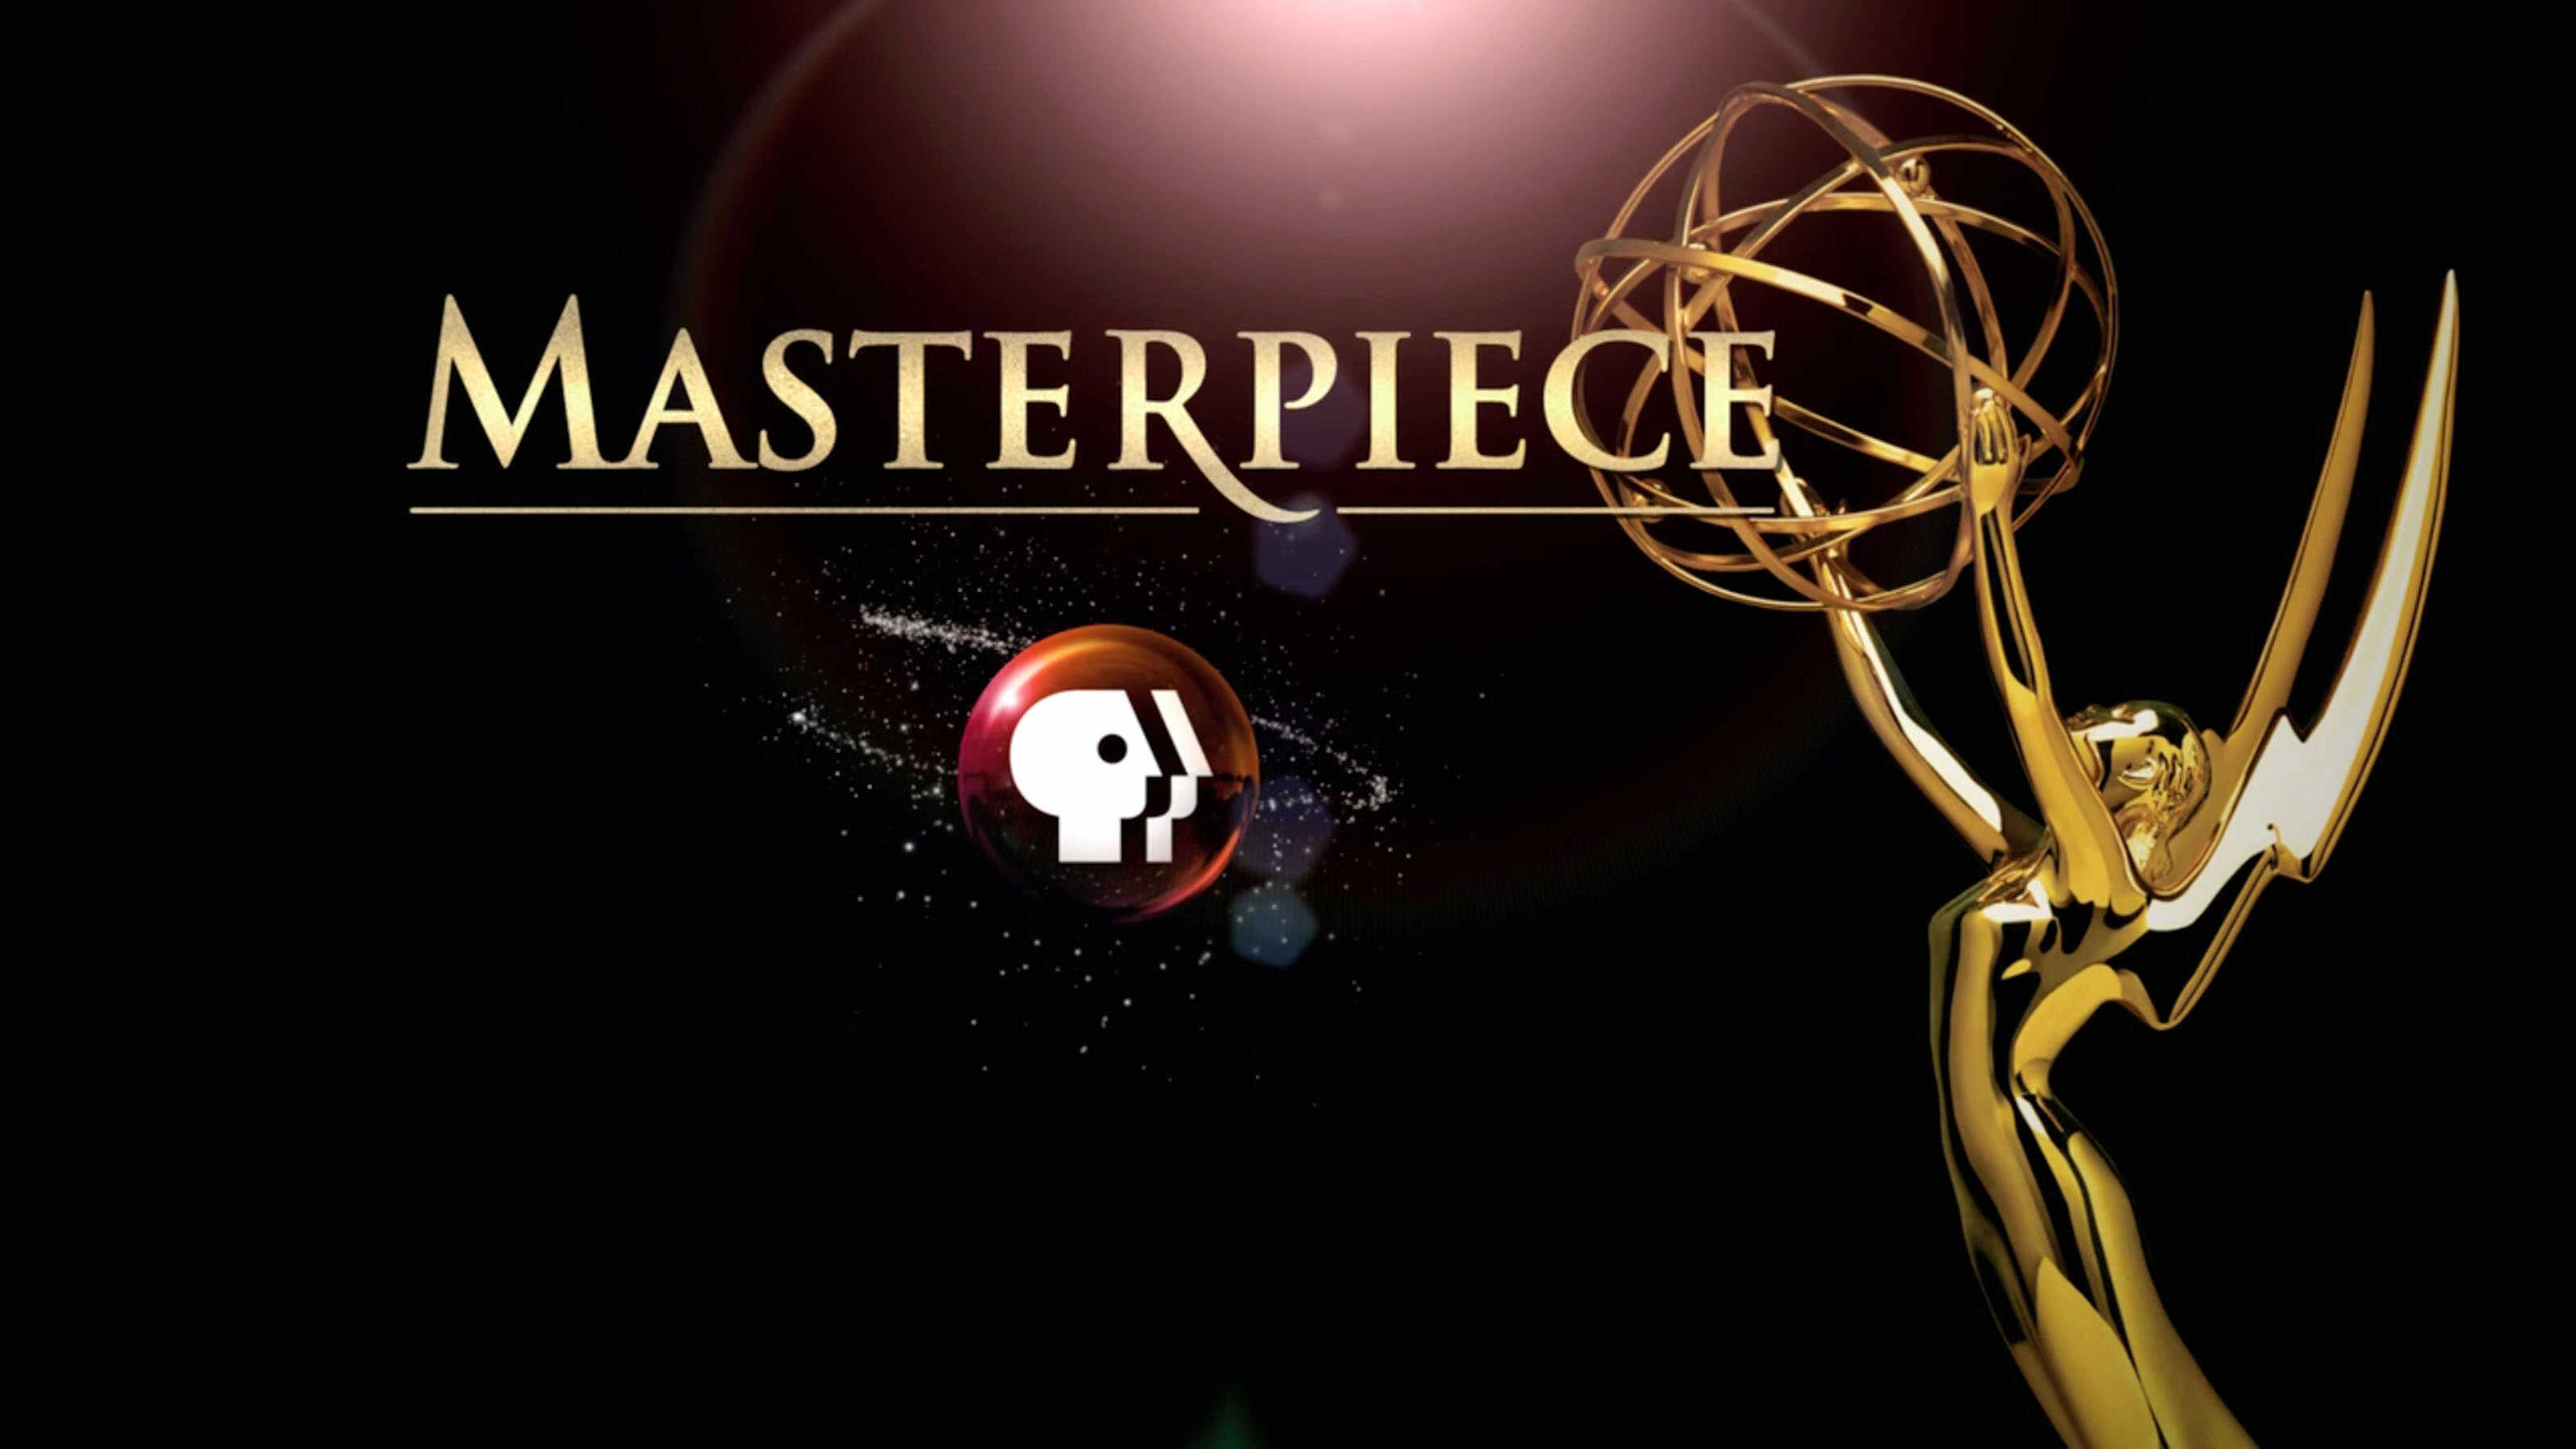 about masterpiece